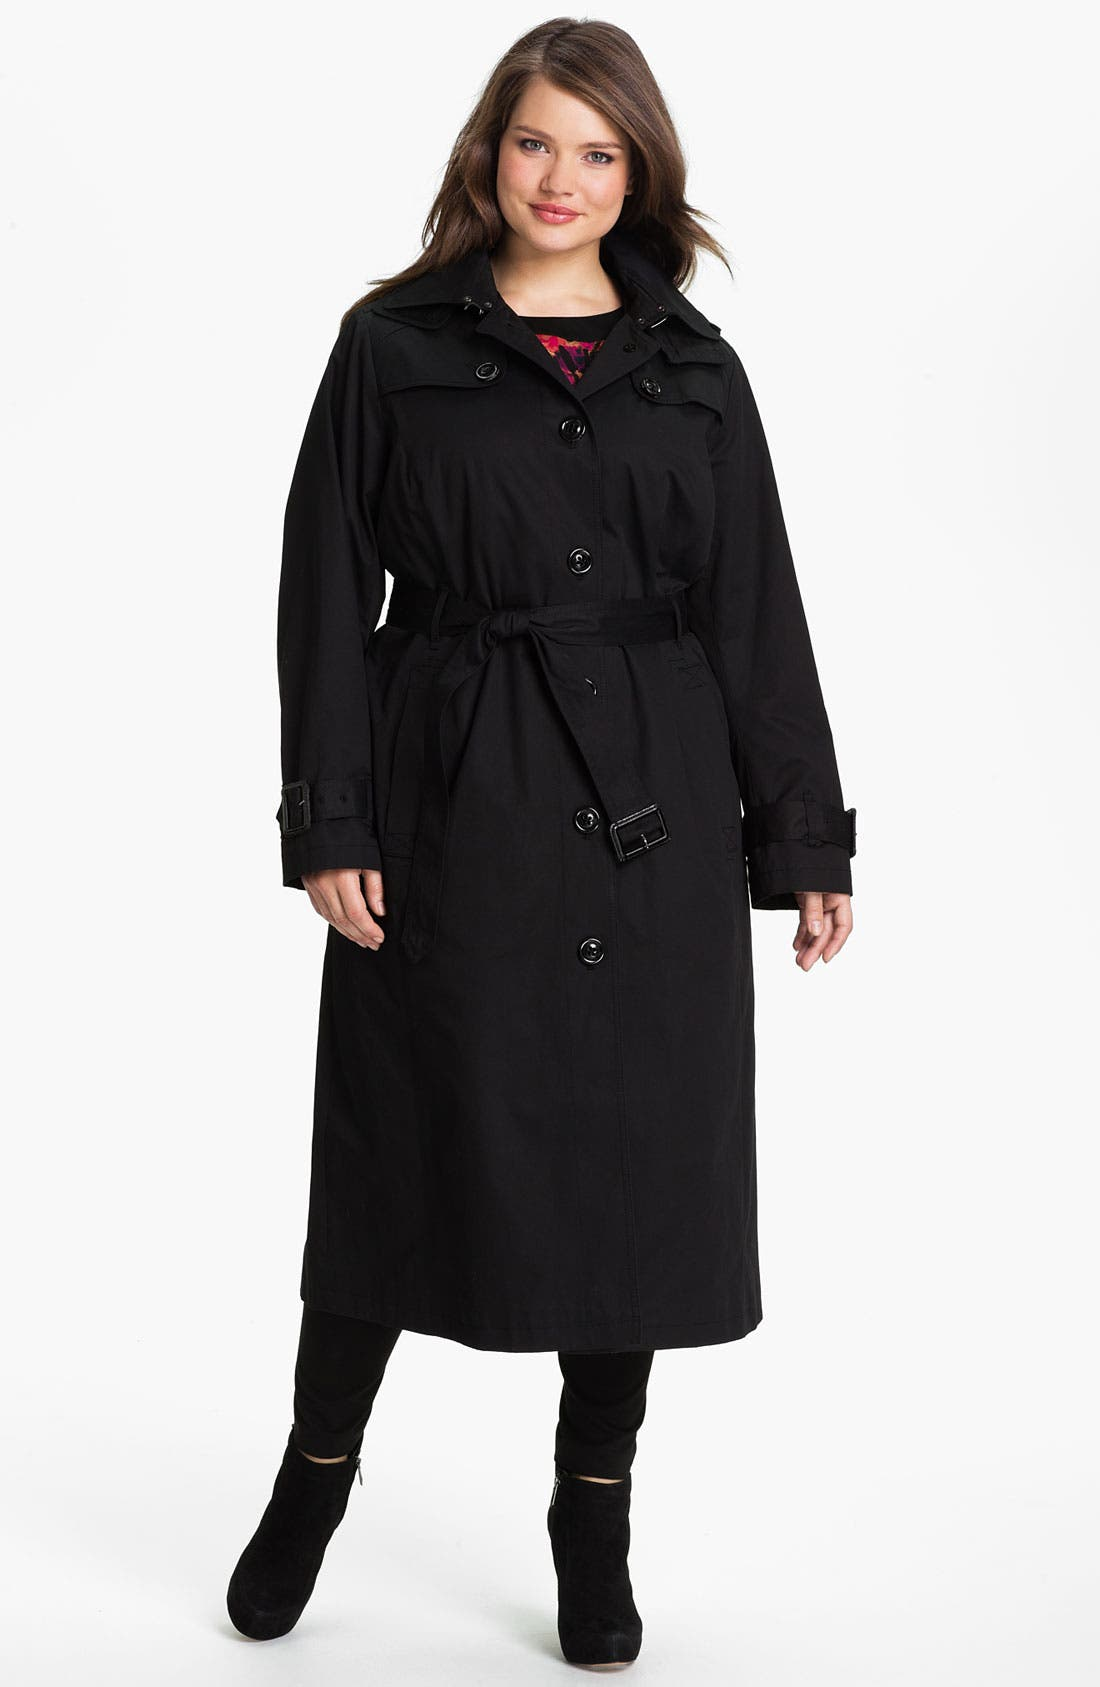 Alternate Image 1 Selected - London Fog Long Trench Raincoat with Liner (Plus Size) (Online Only)